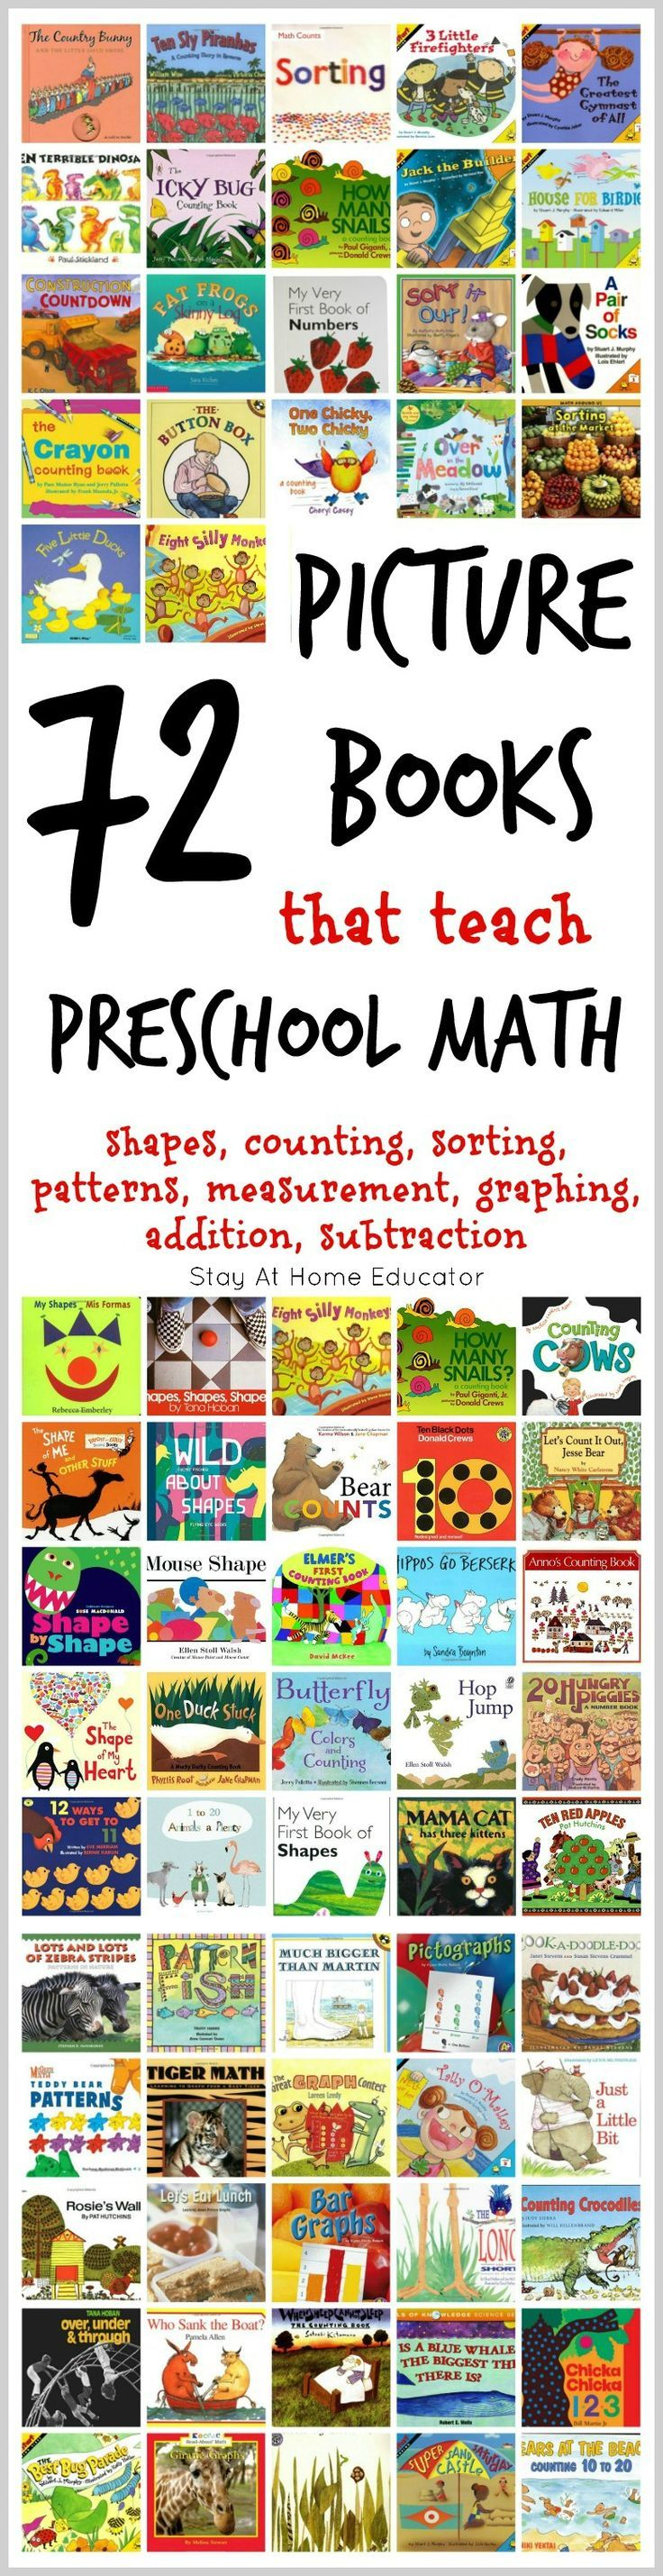 Best 25 Math books ideas on Pinterest